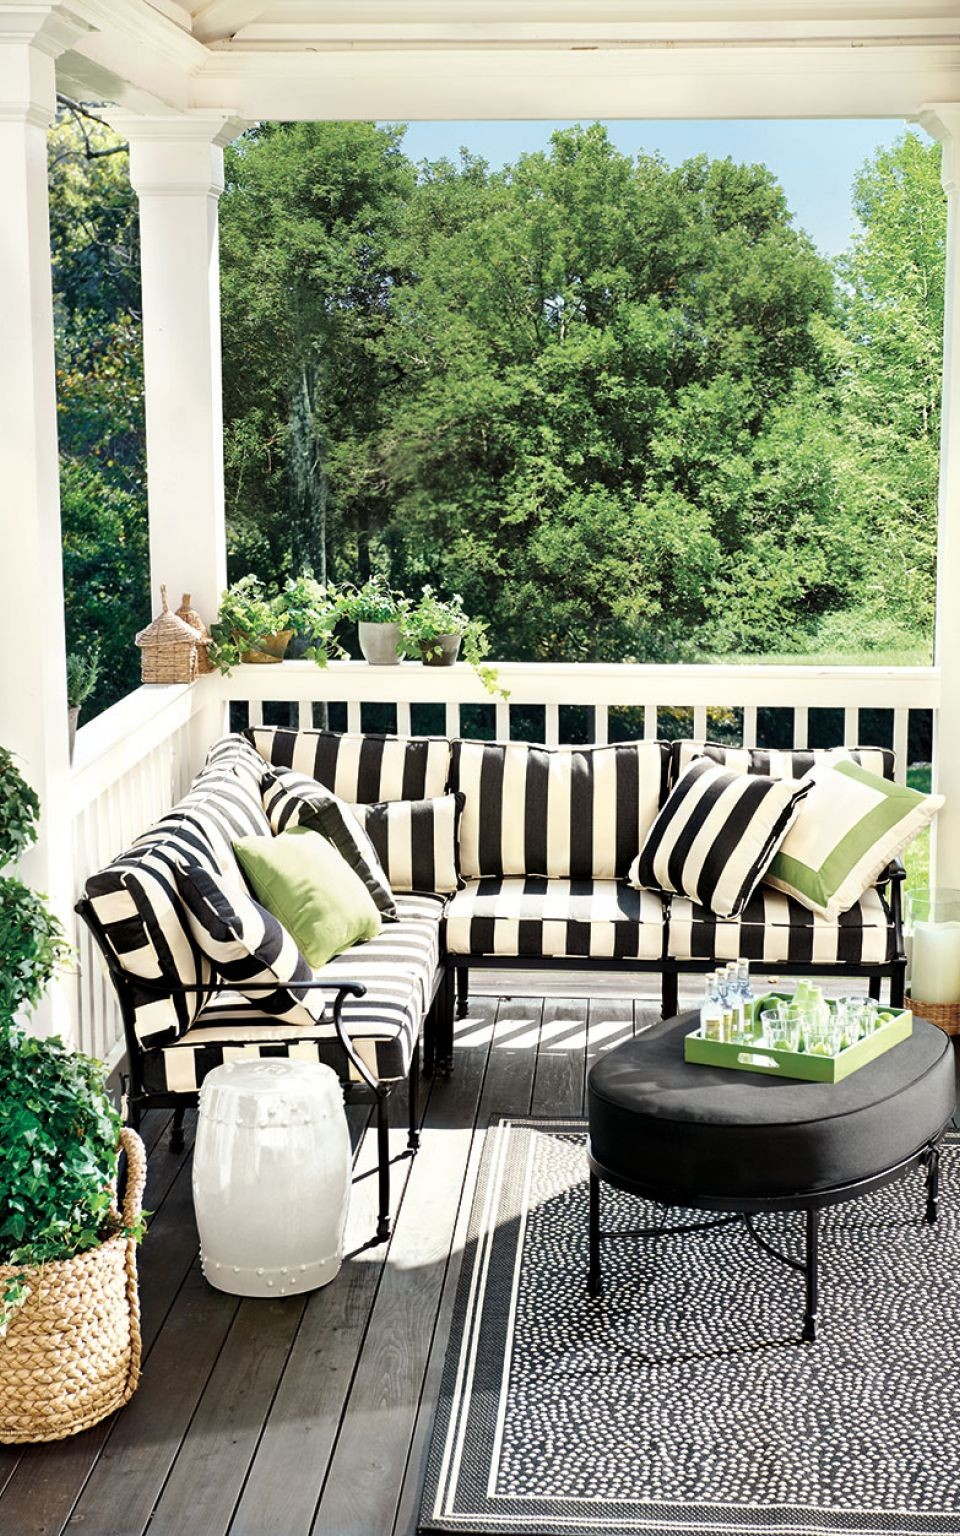 Find A Perfect Place To Create A Corner Reading Nook At Your Open Terrace  Space. Enjoy Each Word Of Your Book Under The Warmth Of Sun During The  Winters And ...